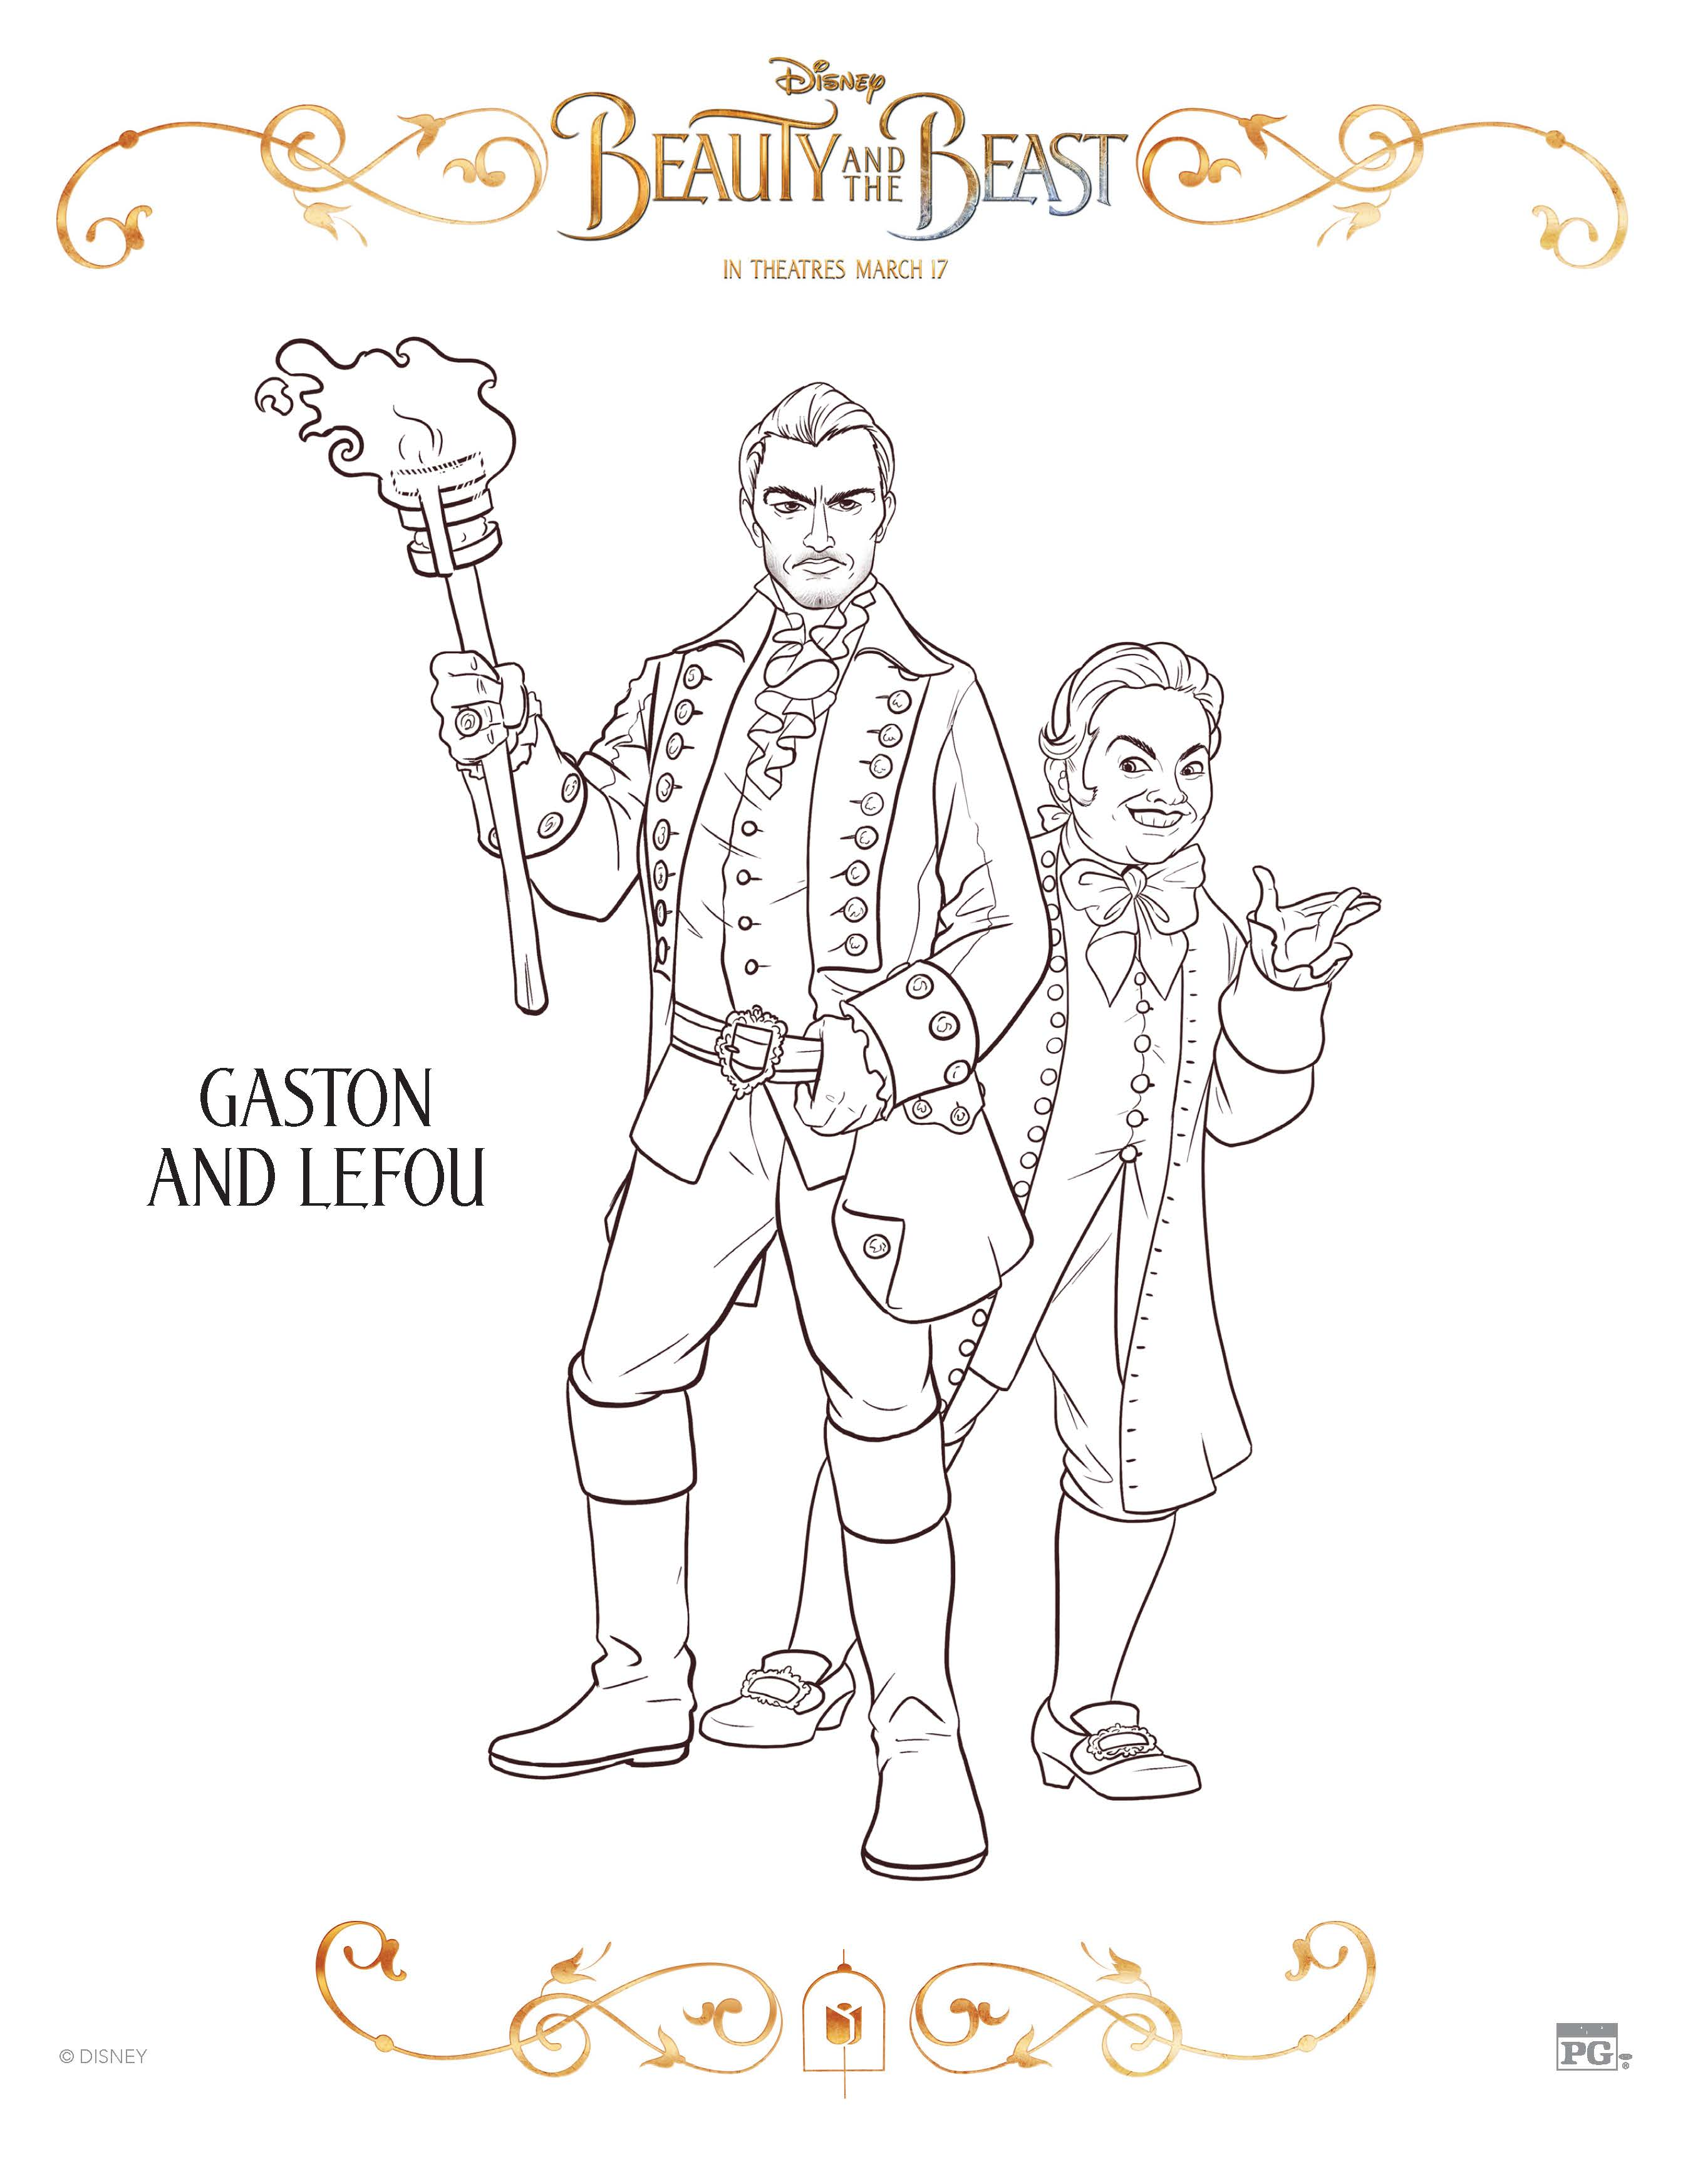 Disney Beauty And The Beast Gaston and Lefou Coloring Page